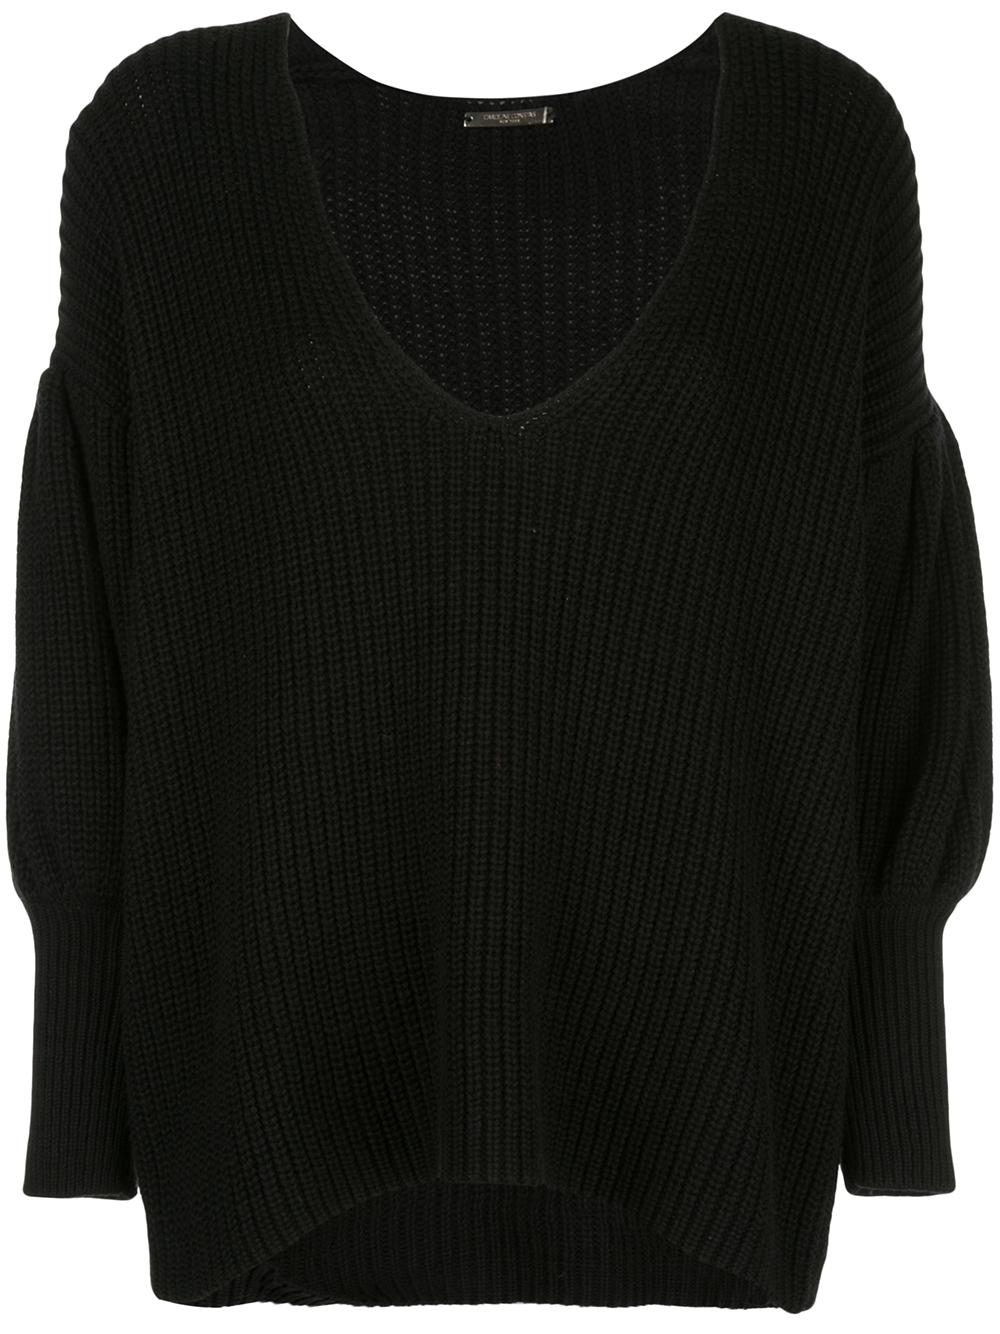 Vee Neck Puff Sleeve Cashmere Sweater